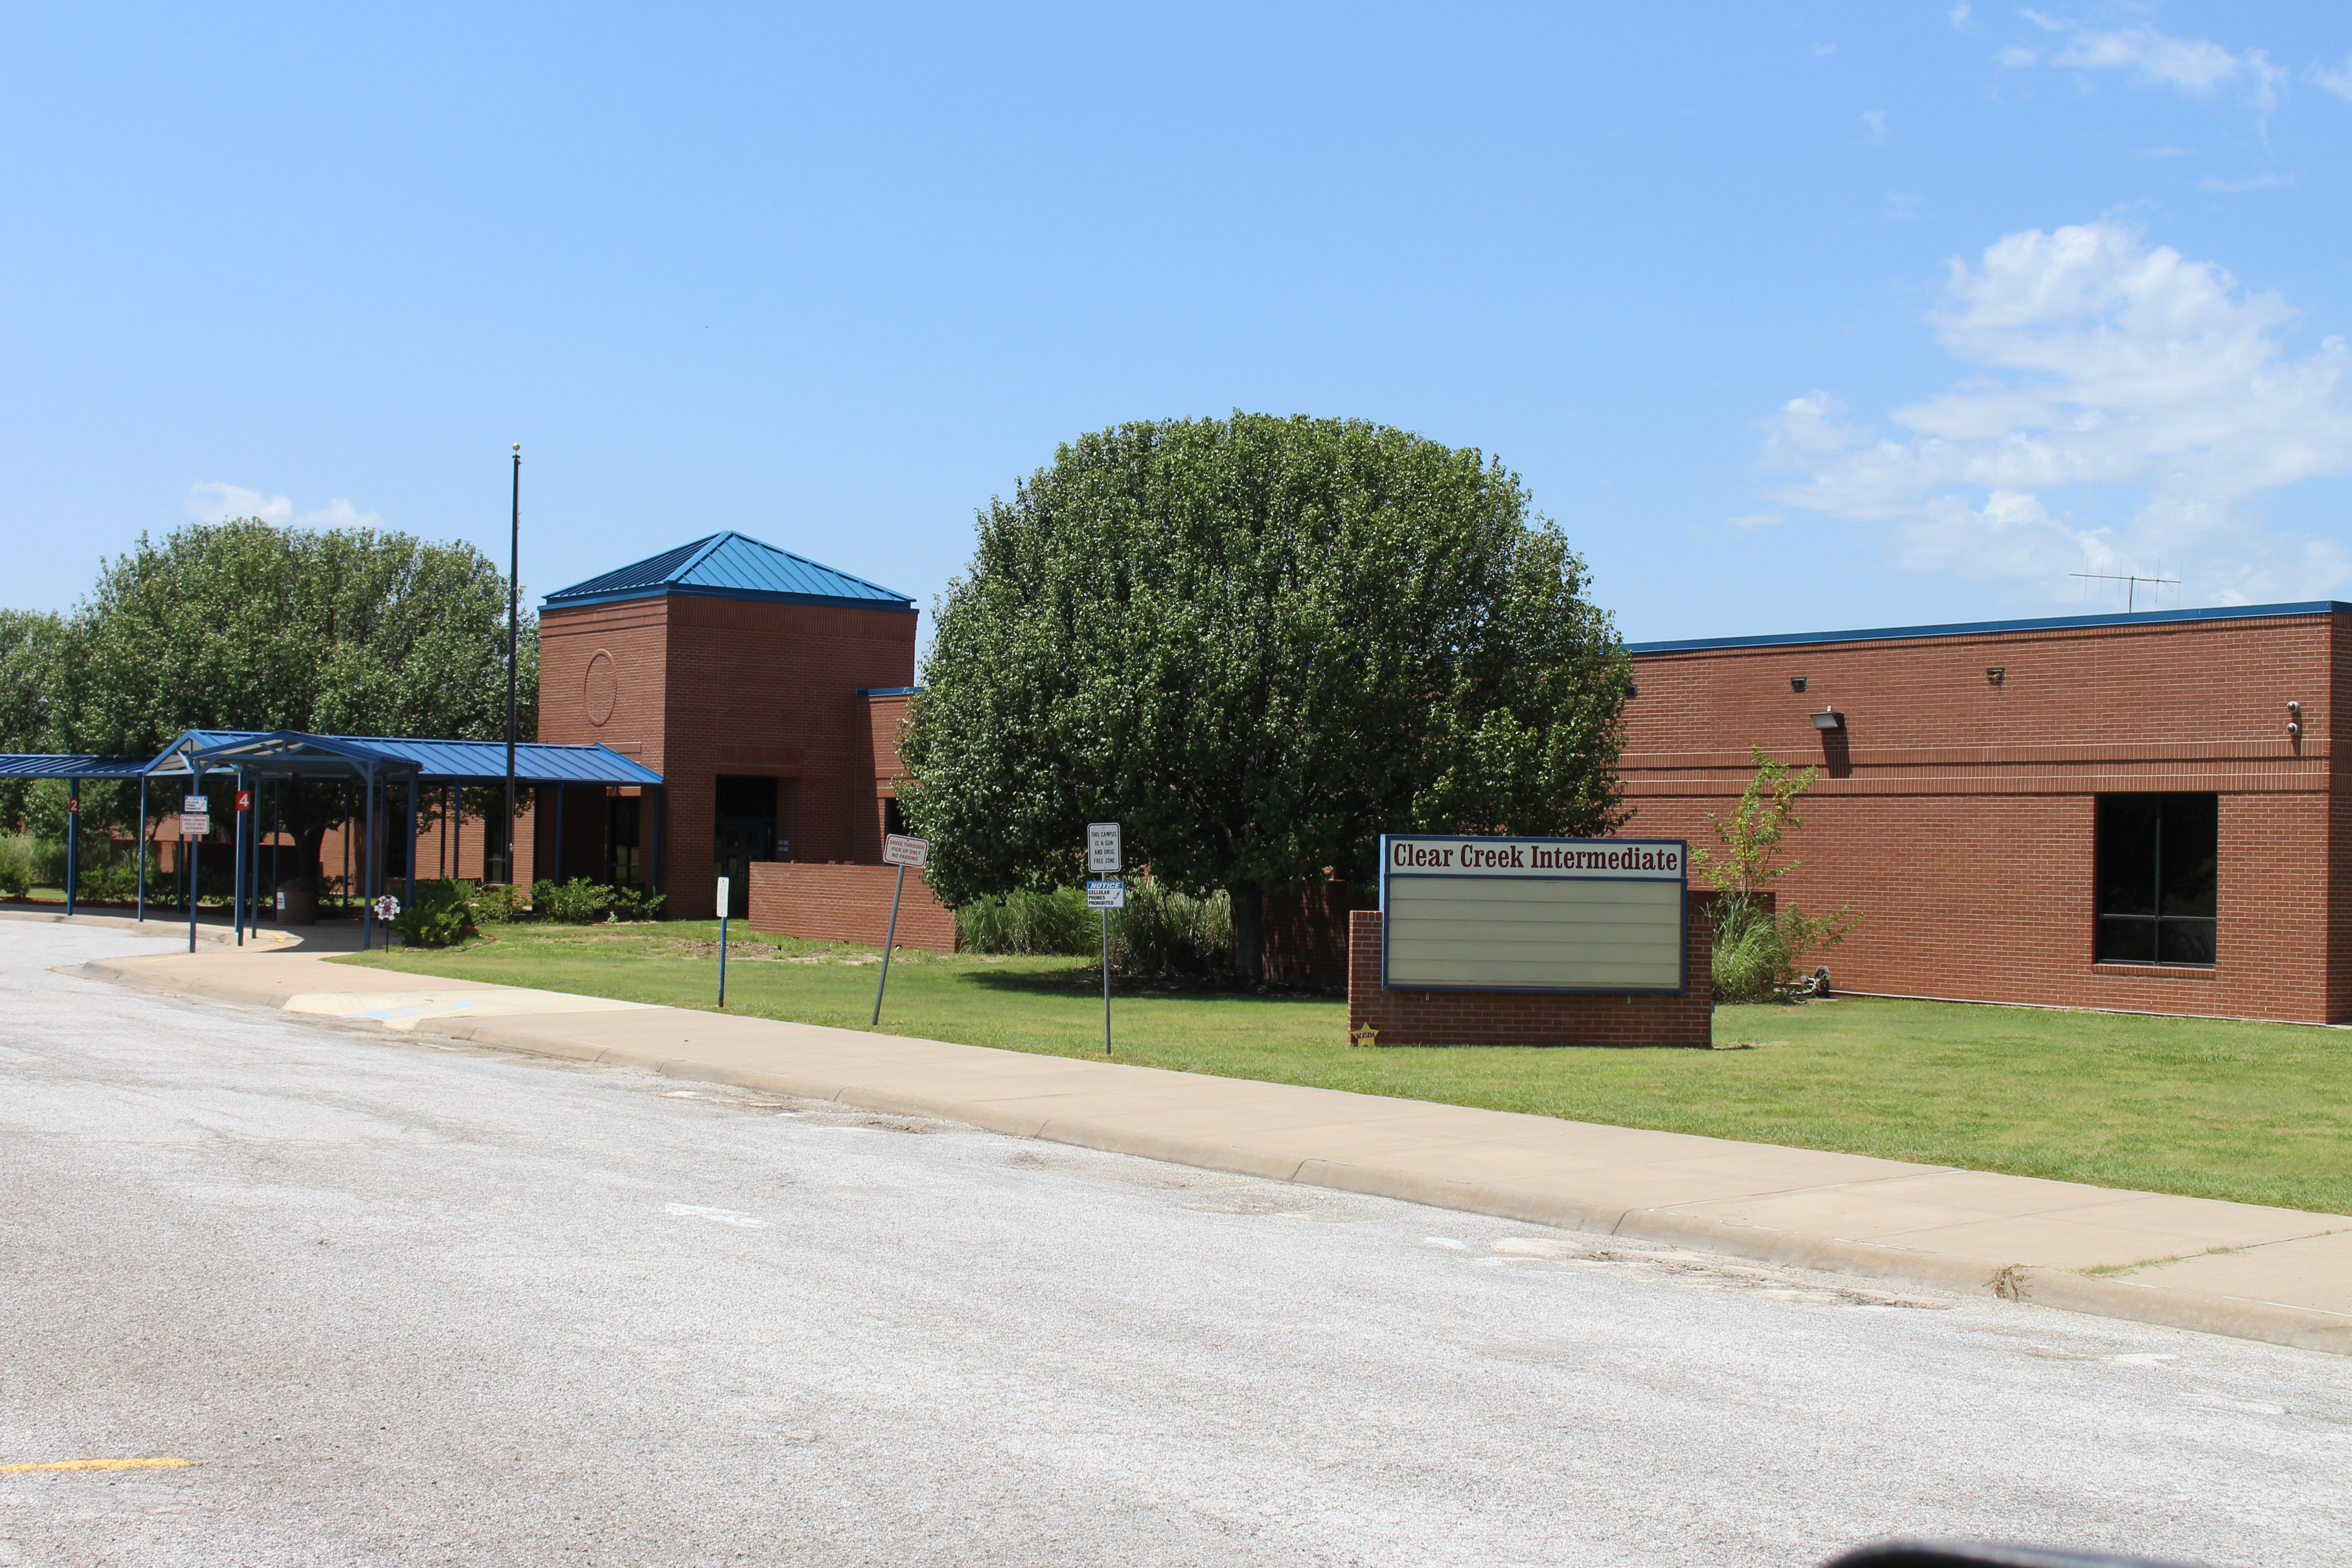 Clear Creek Intermediate School